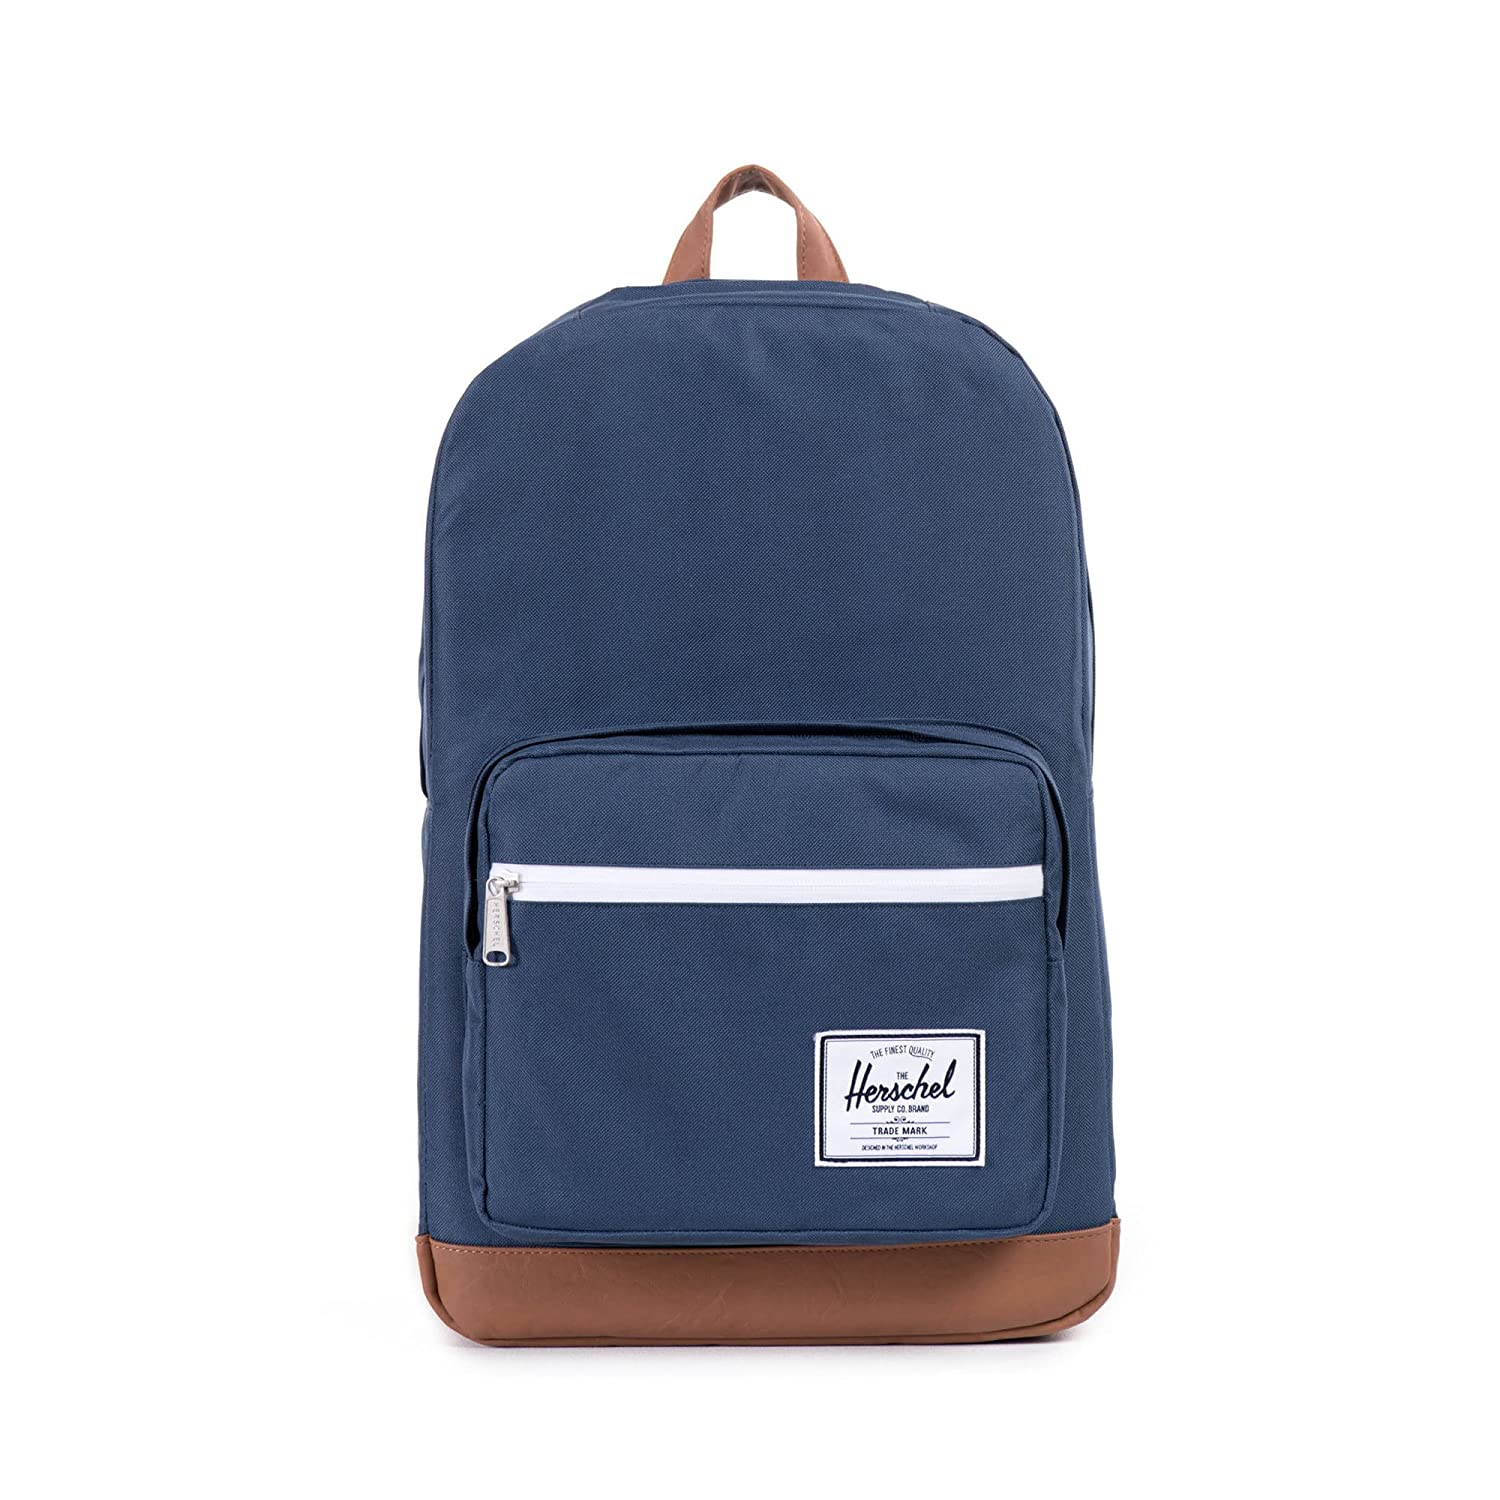 4. Herschel Supply Co. Pop Quiz, Navy, One Size